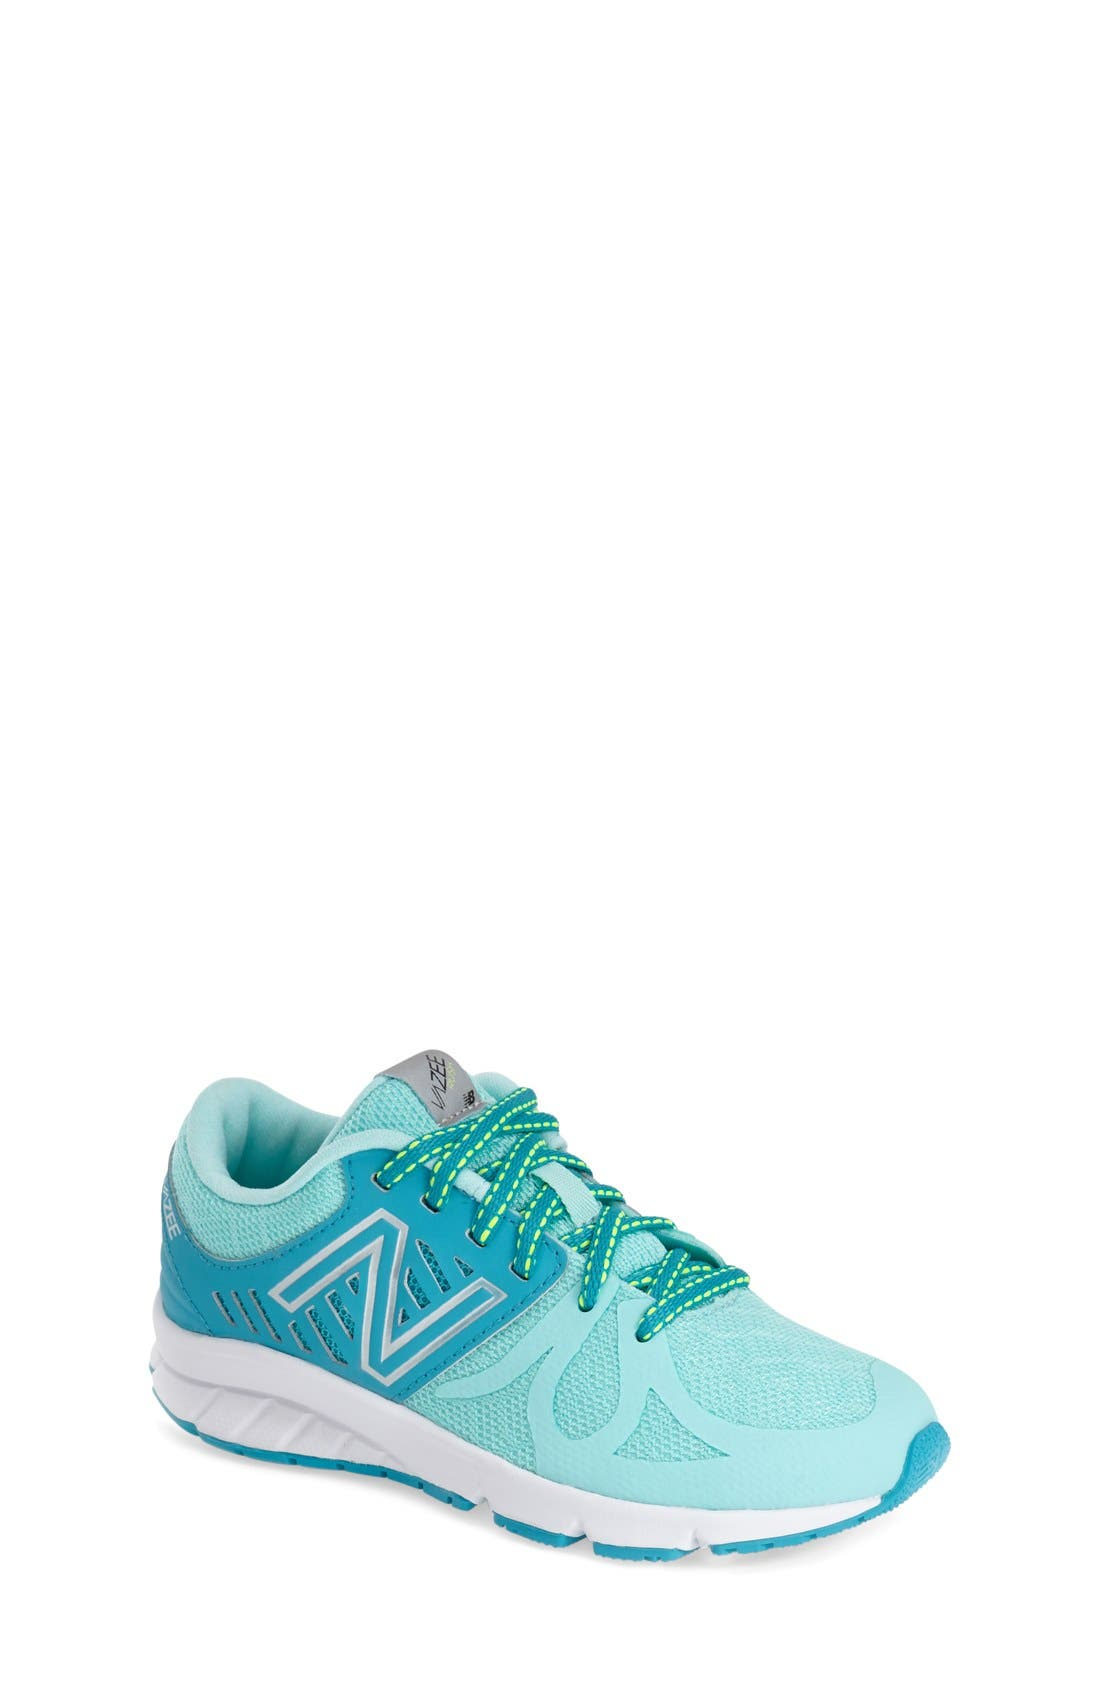 '200 Rush Vazee' Athletic Shoe,                         Main,                         color, SEA GLASS